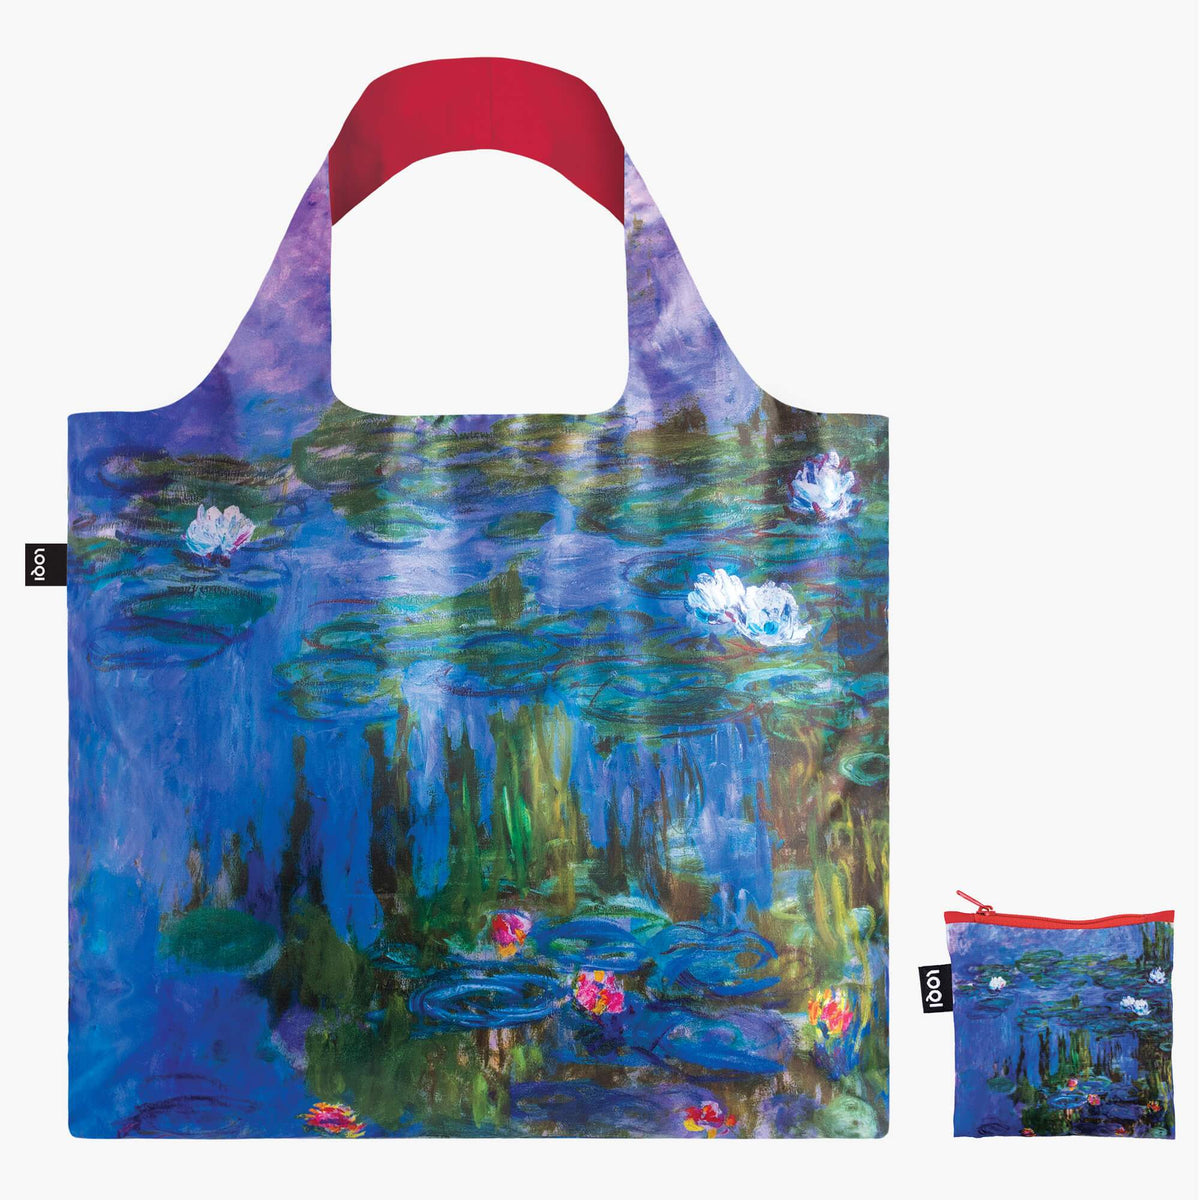 water-lilies-recycled-bags